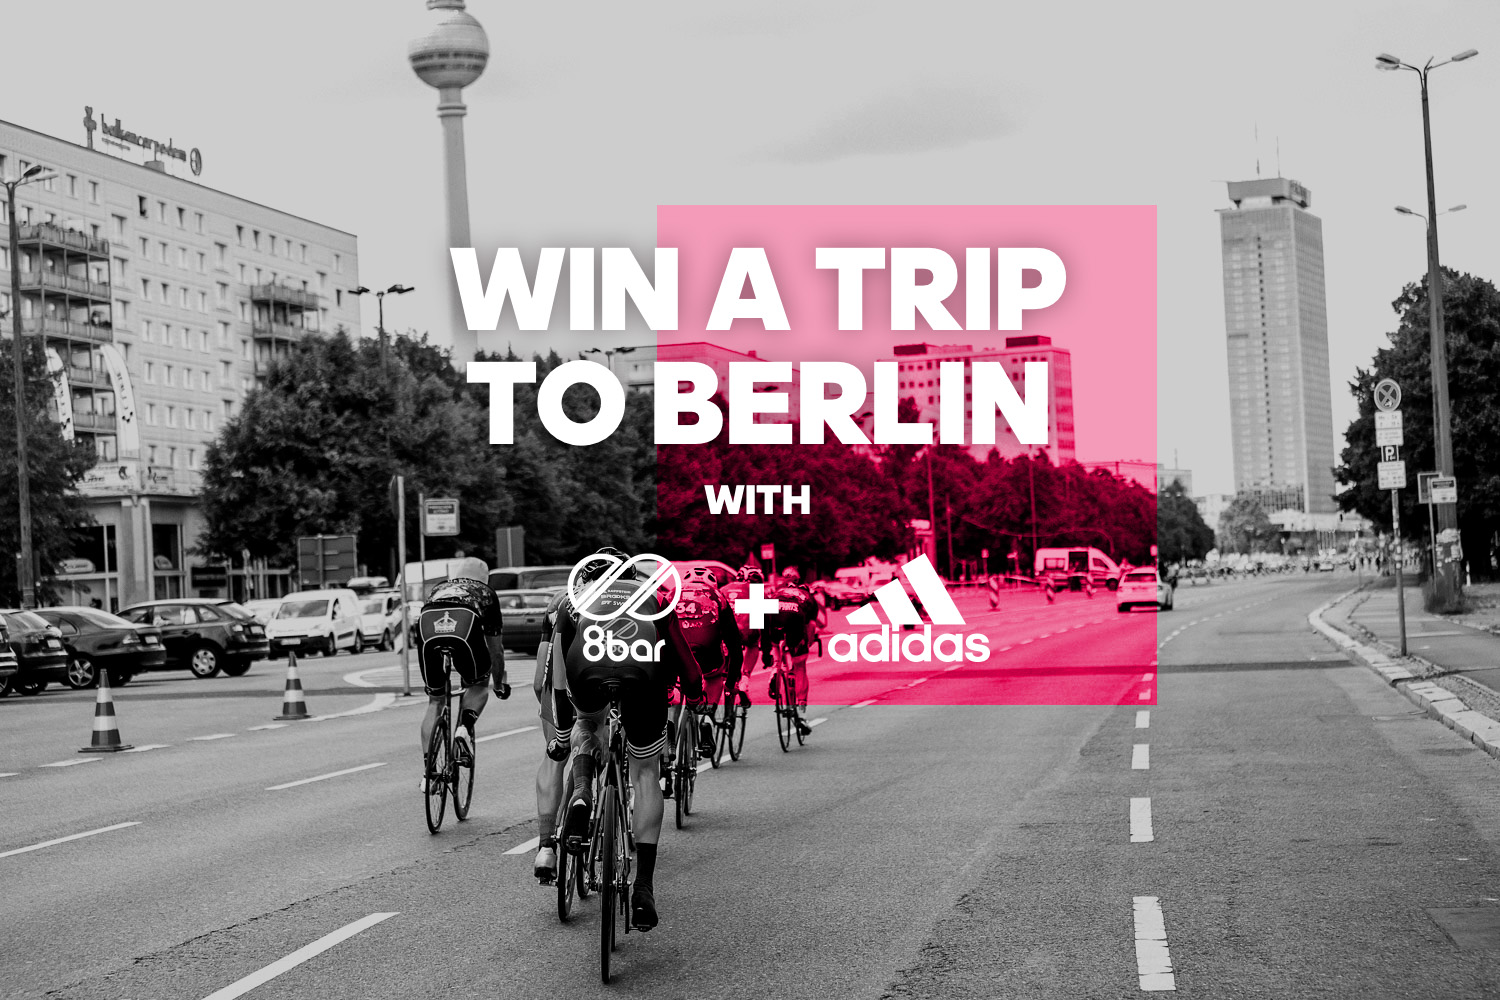 win a trip to berlin 002 - Win a trip to Berlin with 8bar team and adidas cycling